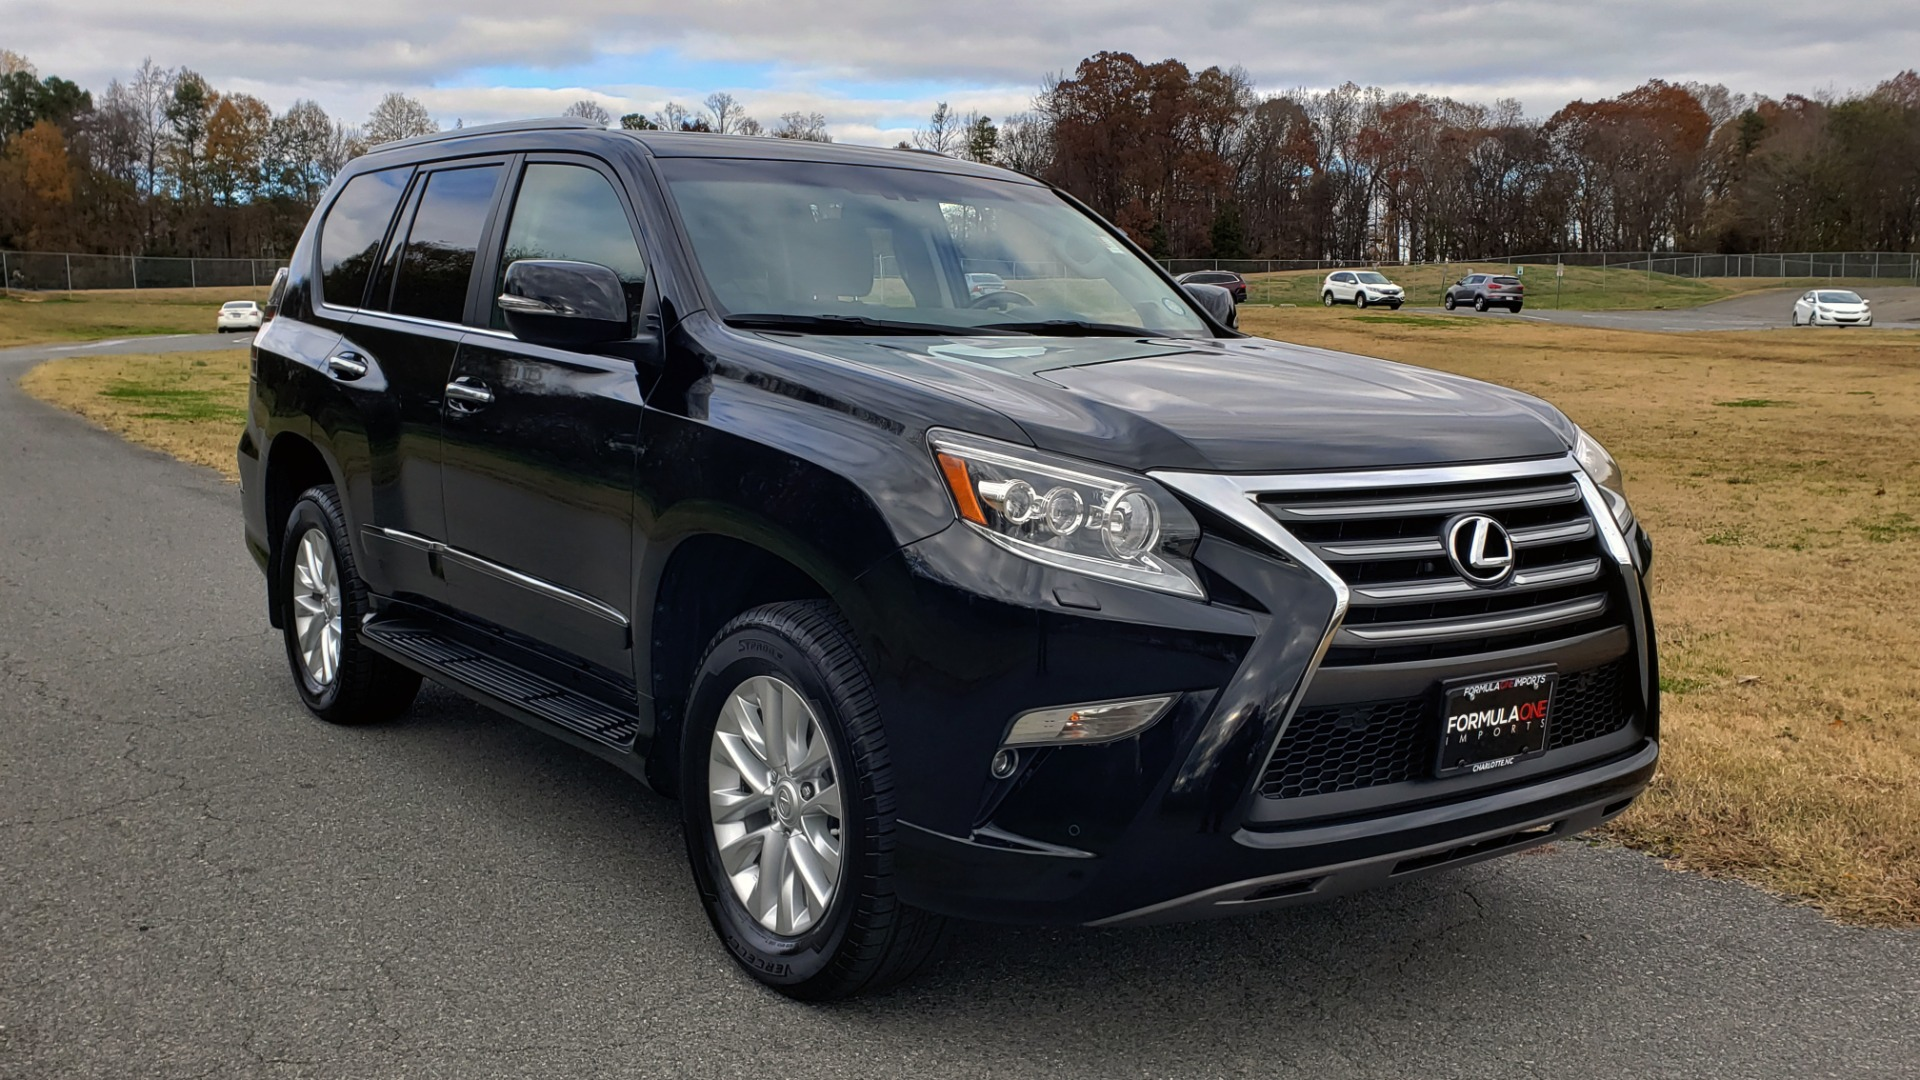 Used 2017 Lexus GX 460 PREMIUM / 4WD / NAV / SUNROOF / 3-ROW / BSM / REARVIEW for sale $34,995 at Formula Imports in Charlotte NC 28227 4